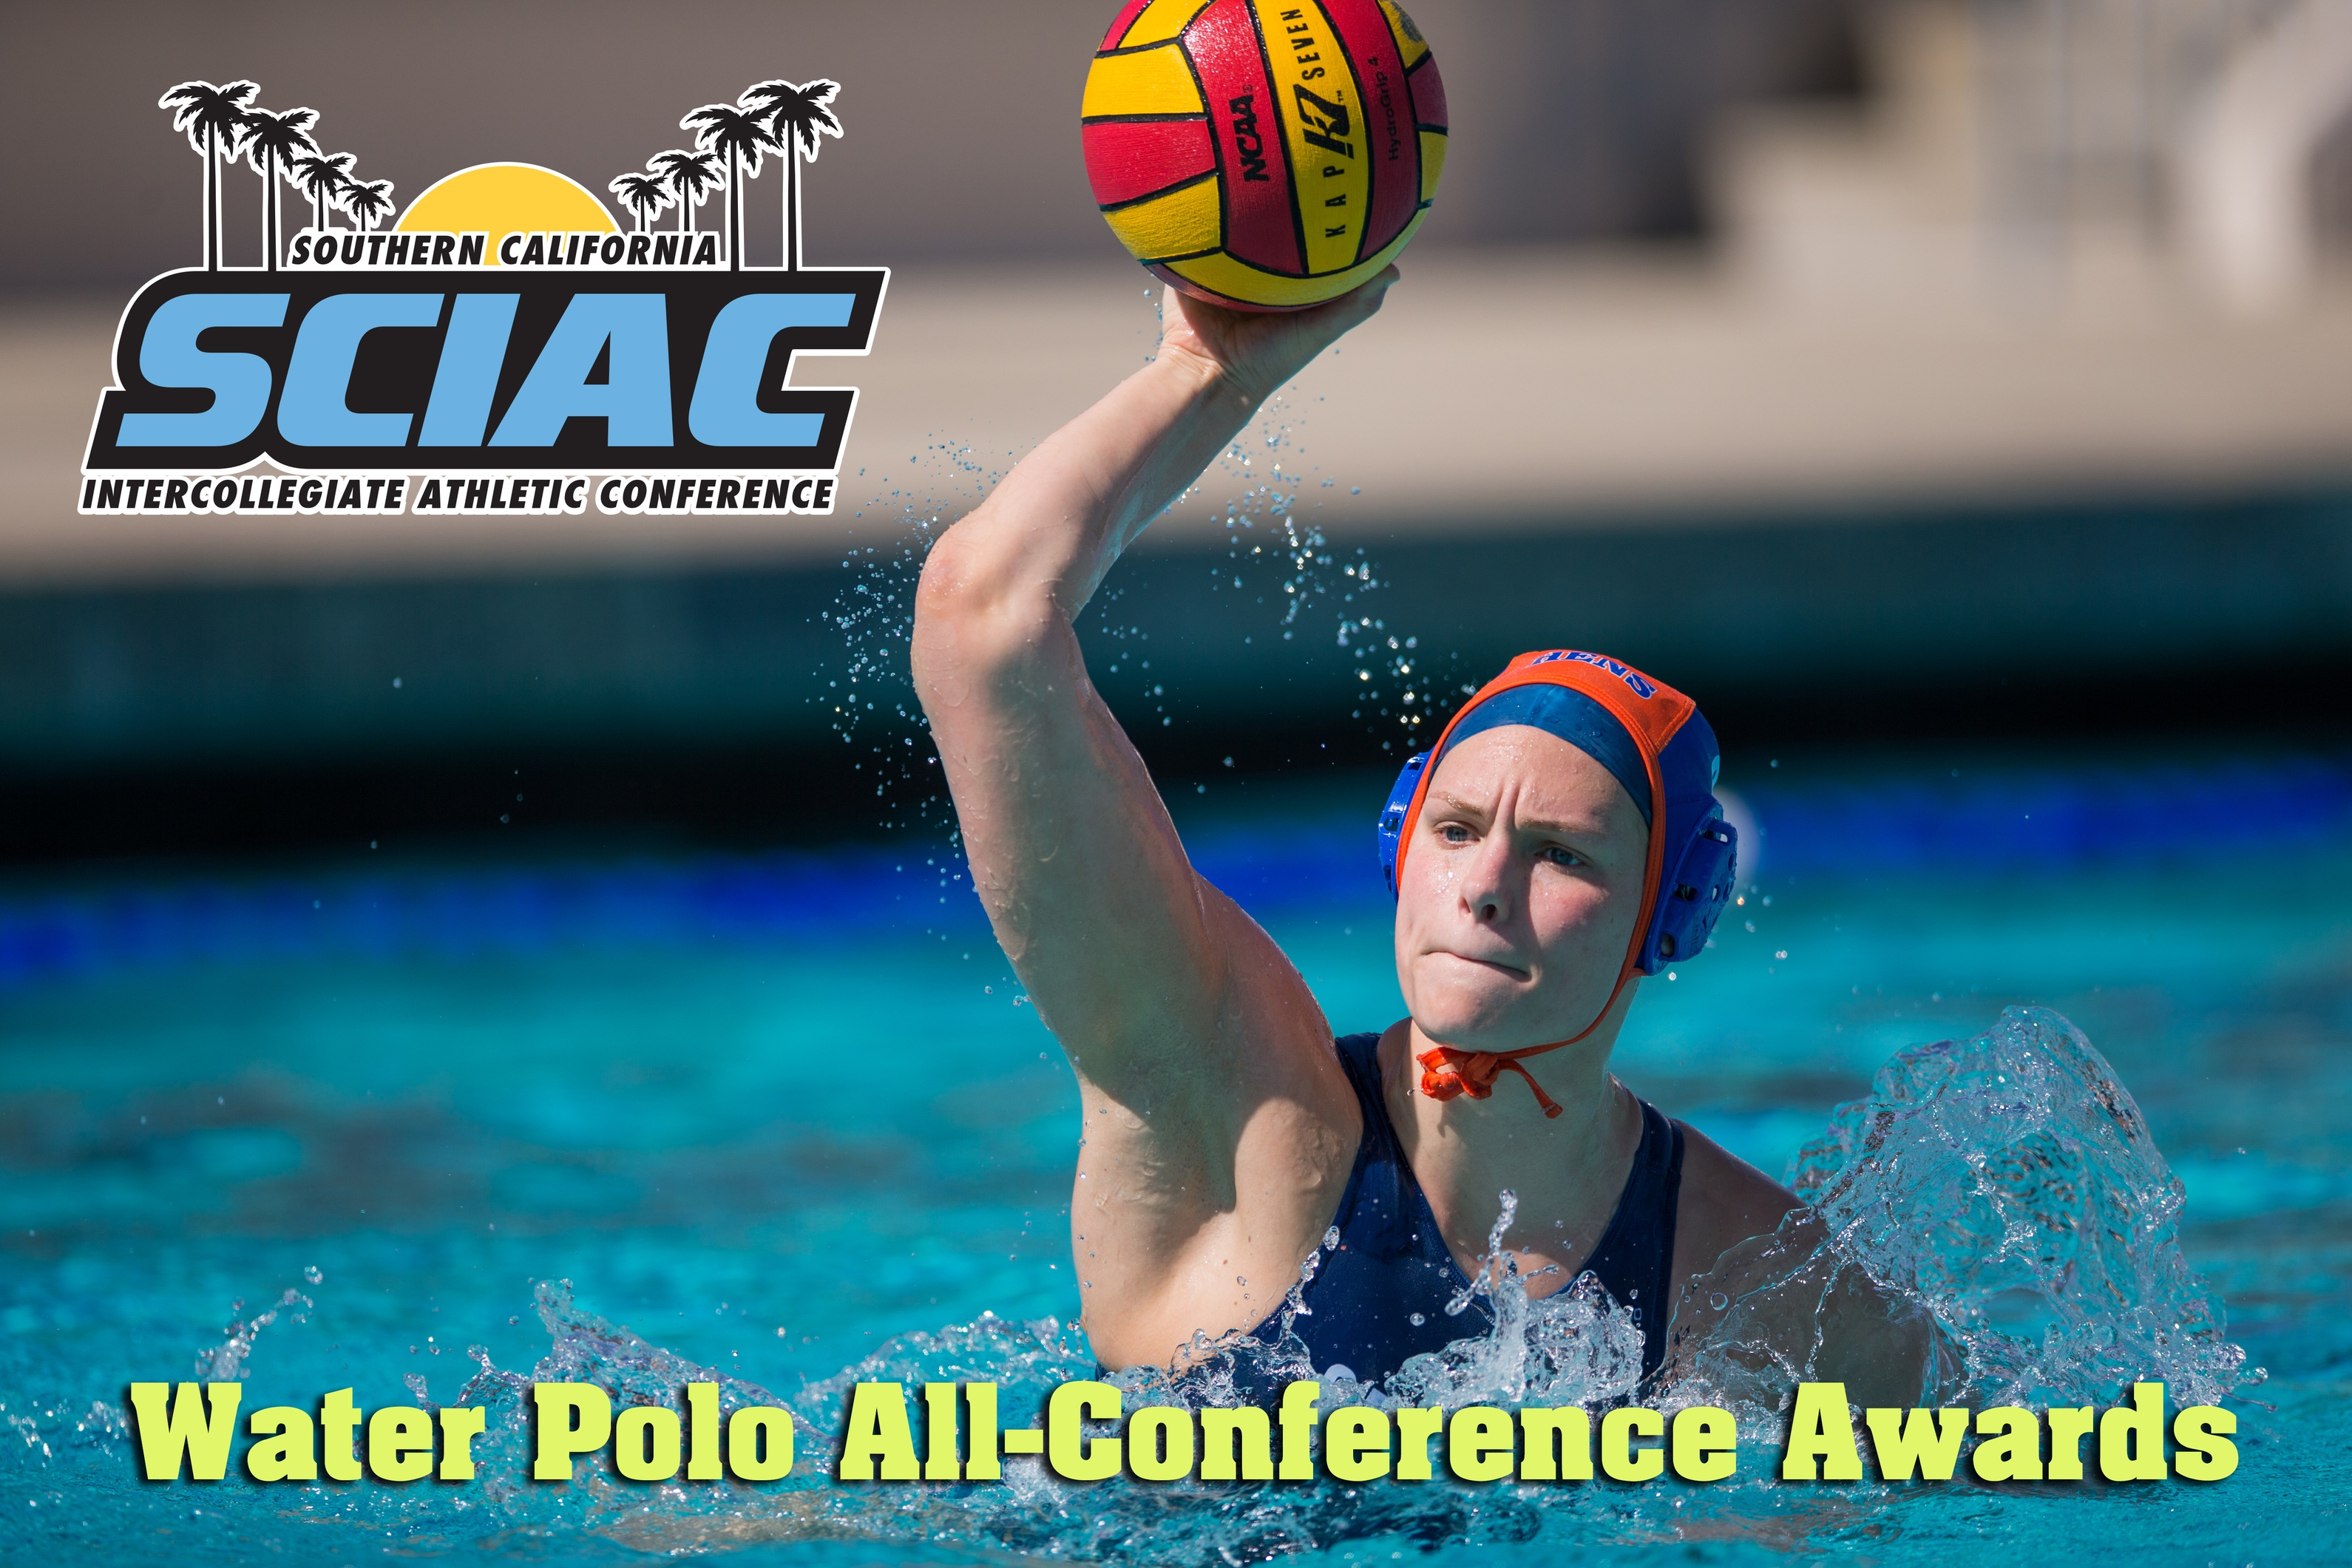 2017 Women's Water Polo All-Conference Team